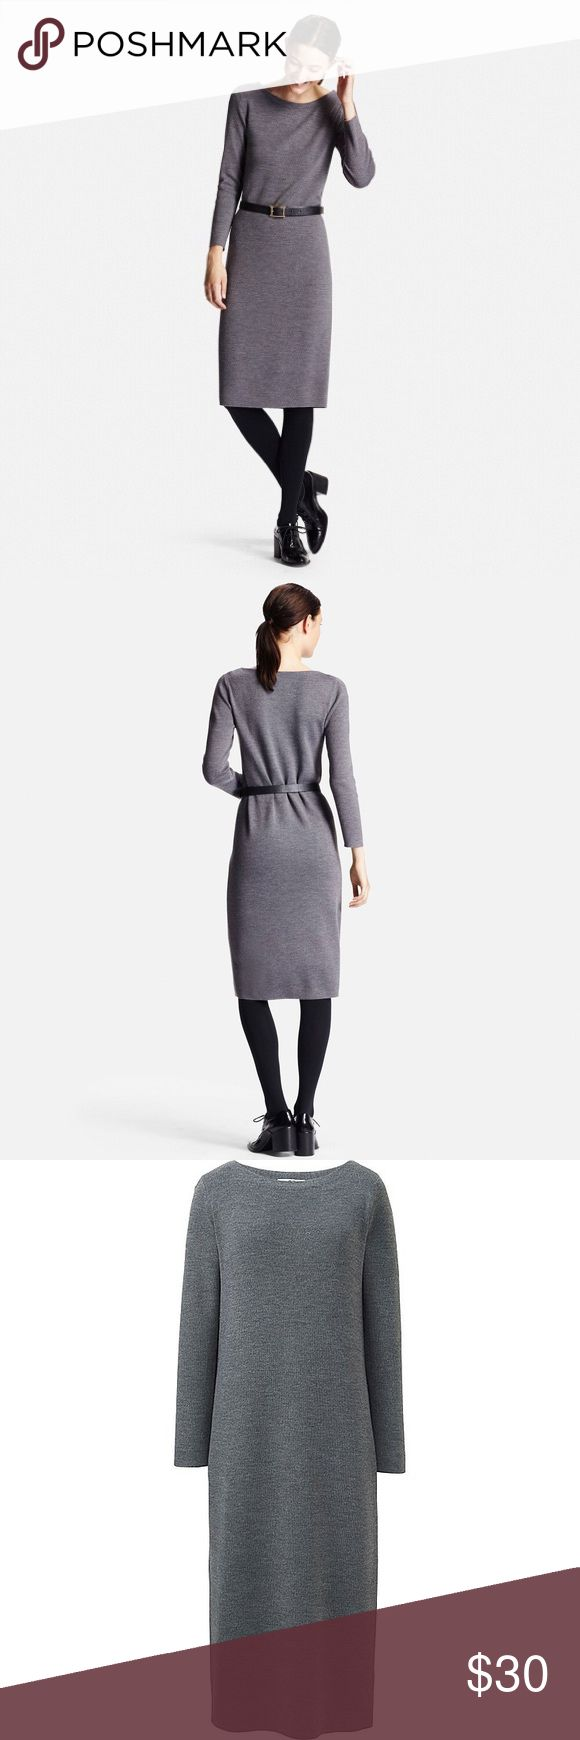 Grey Uniqlo Knit Column Dress Great closet staple and only worn once. It's very versatile -- you can easily dress it up with a belt and pumps or dress it down with sneakers and a denim jacket. It is a nice quality knit. Uniqlo Dresses